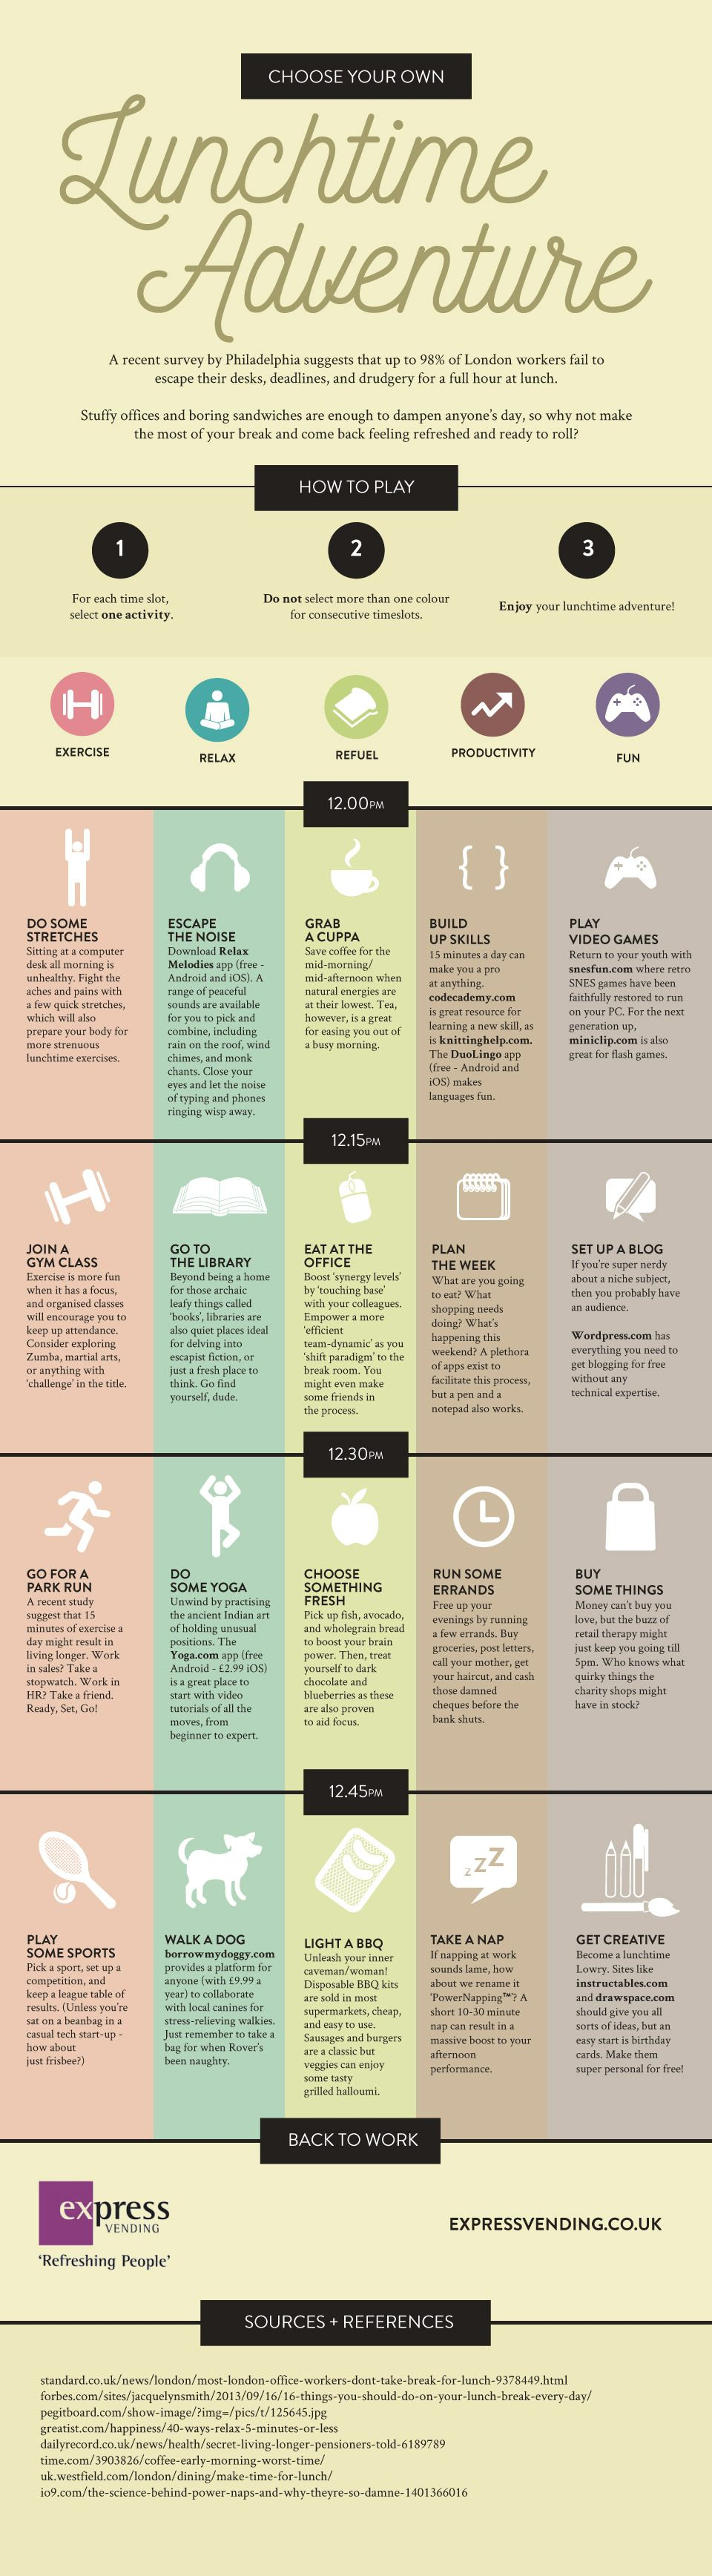 Choose Your Own Lunchtime Adventure #infographic